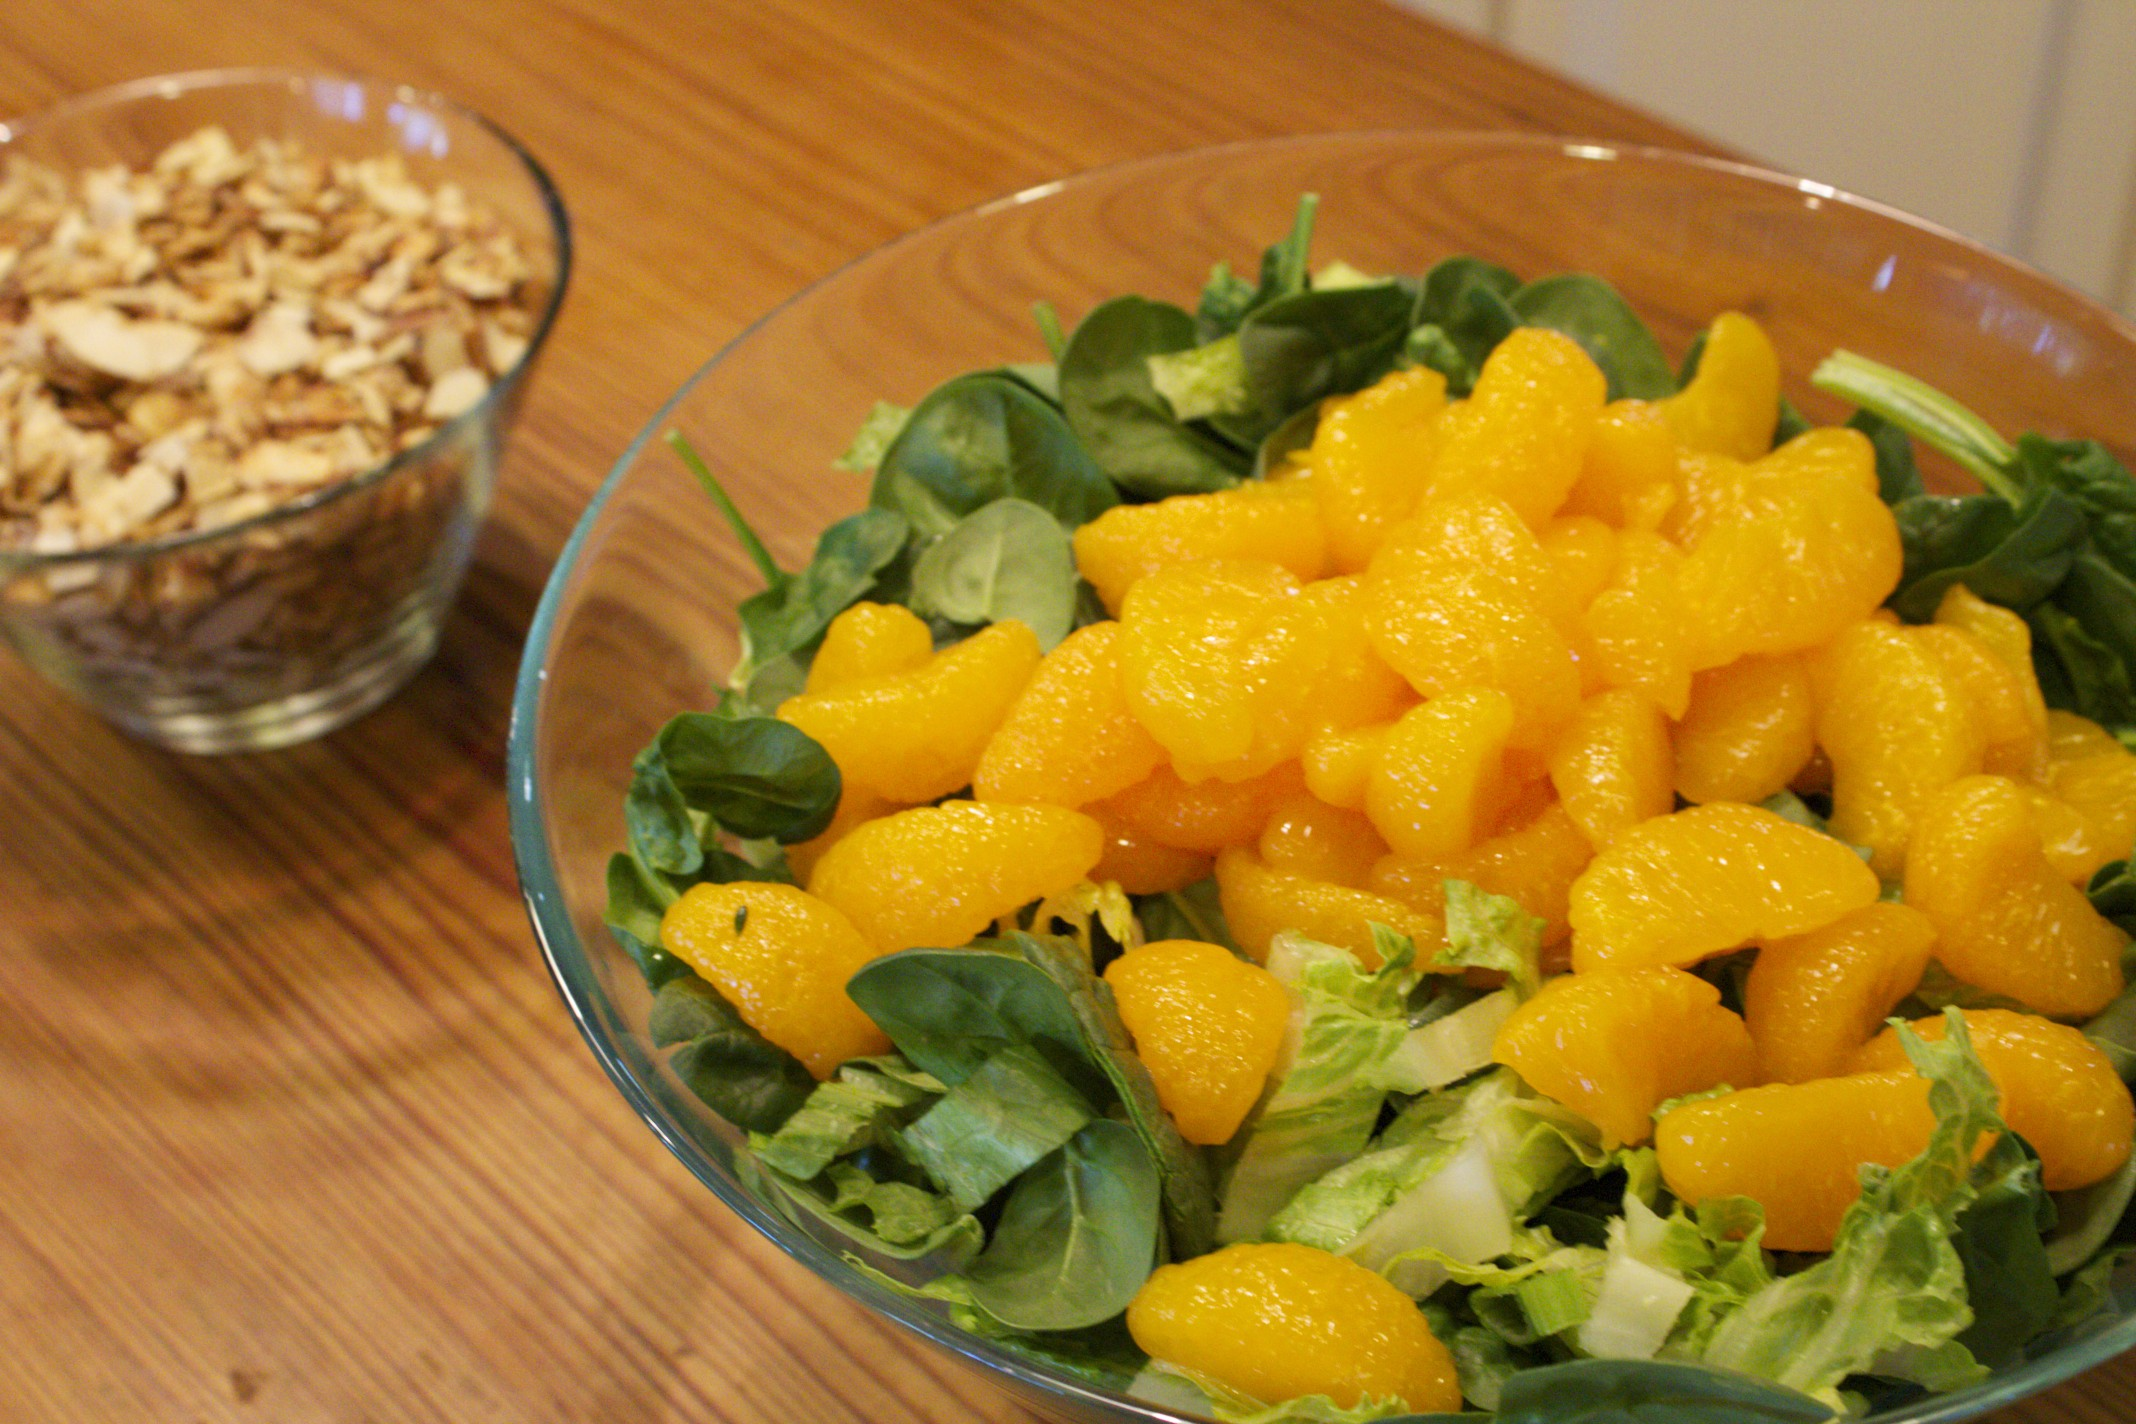 garden salad with oranges and candied almonds